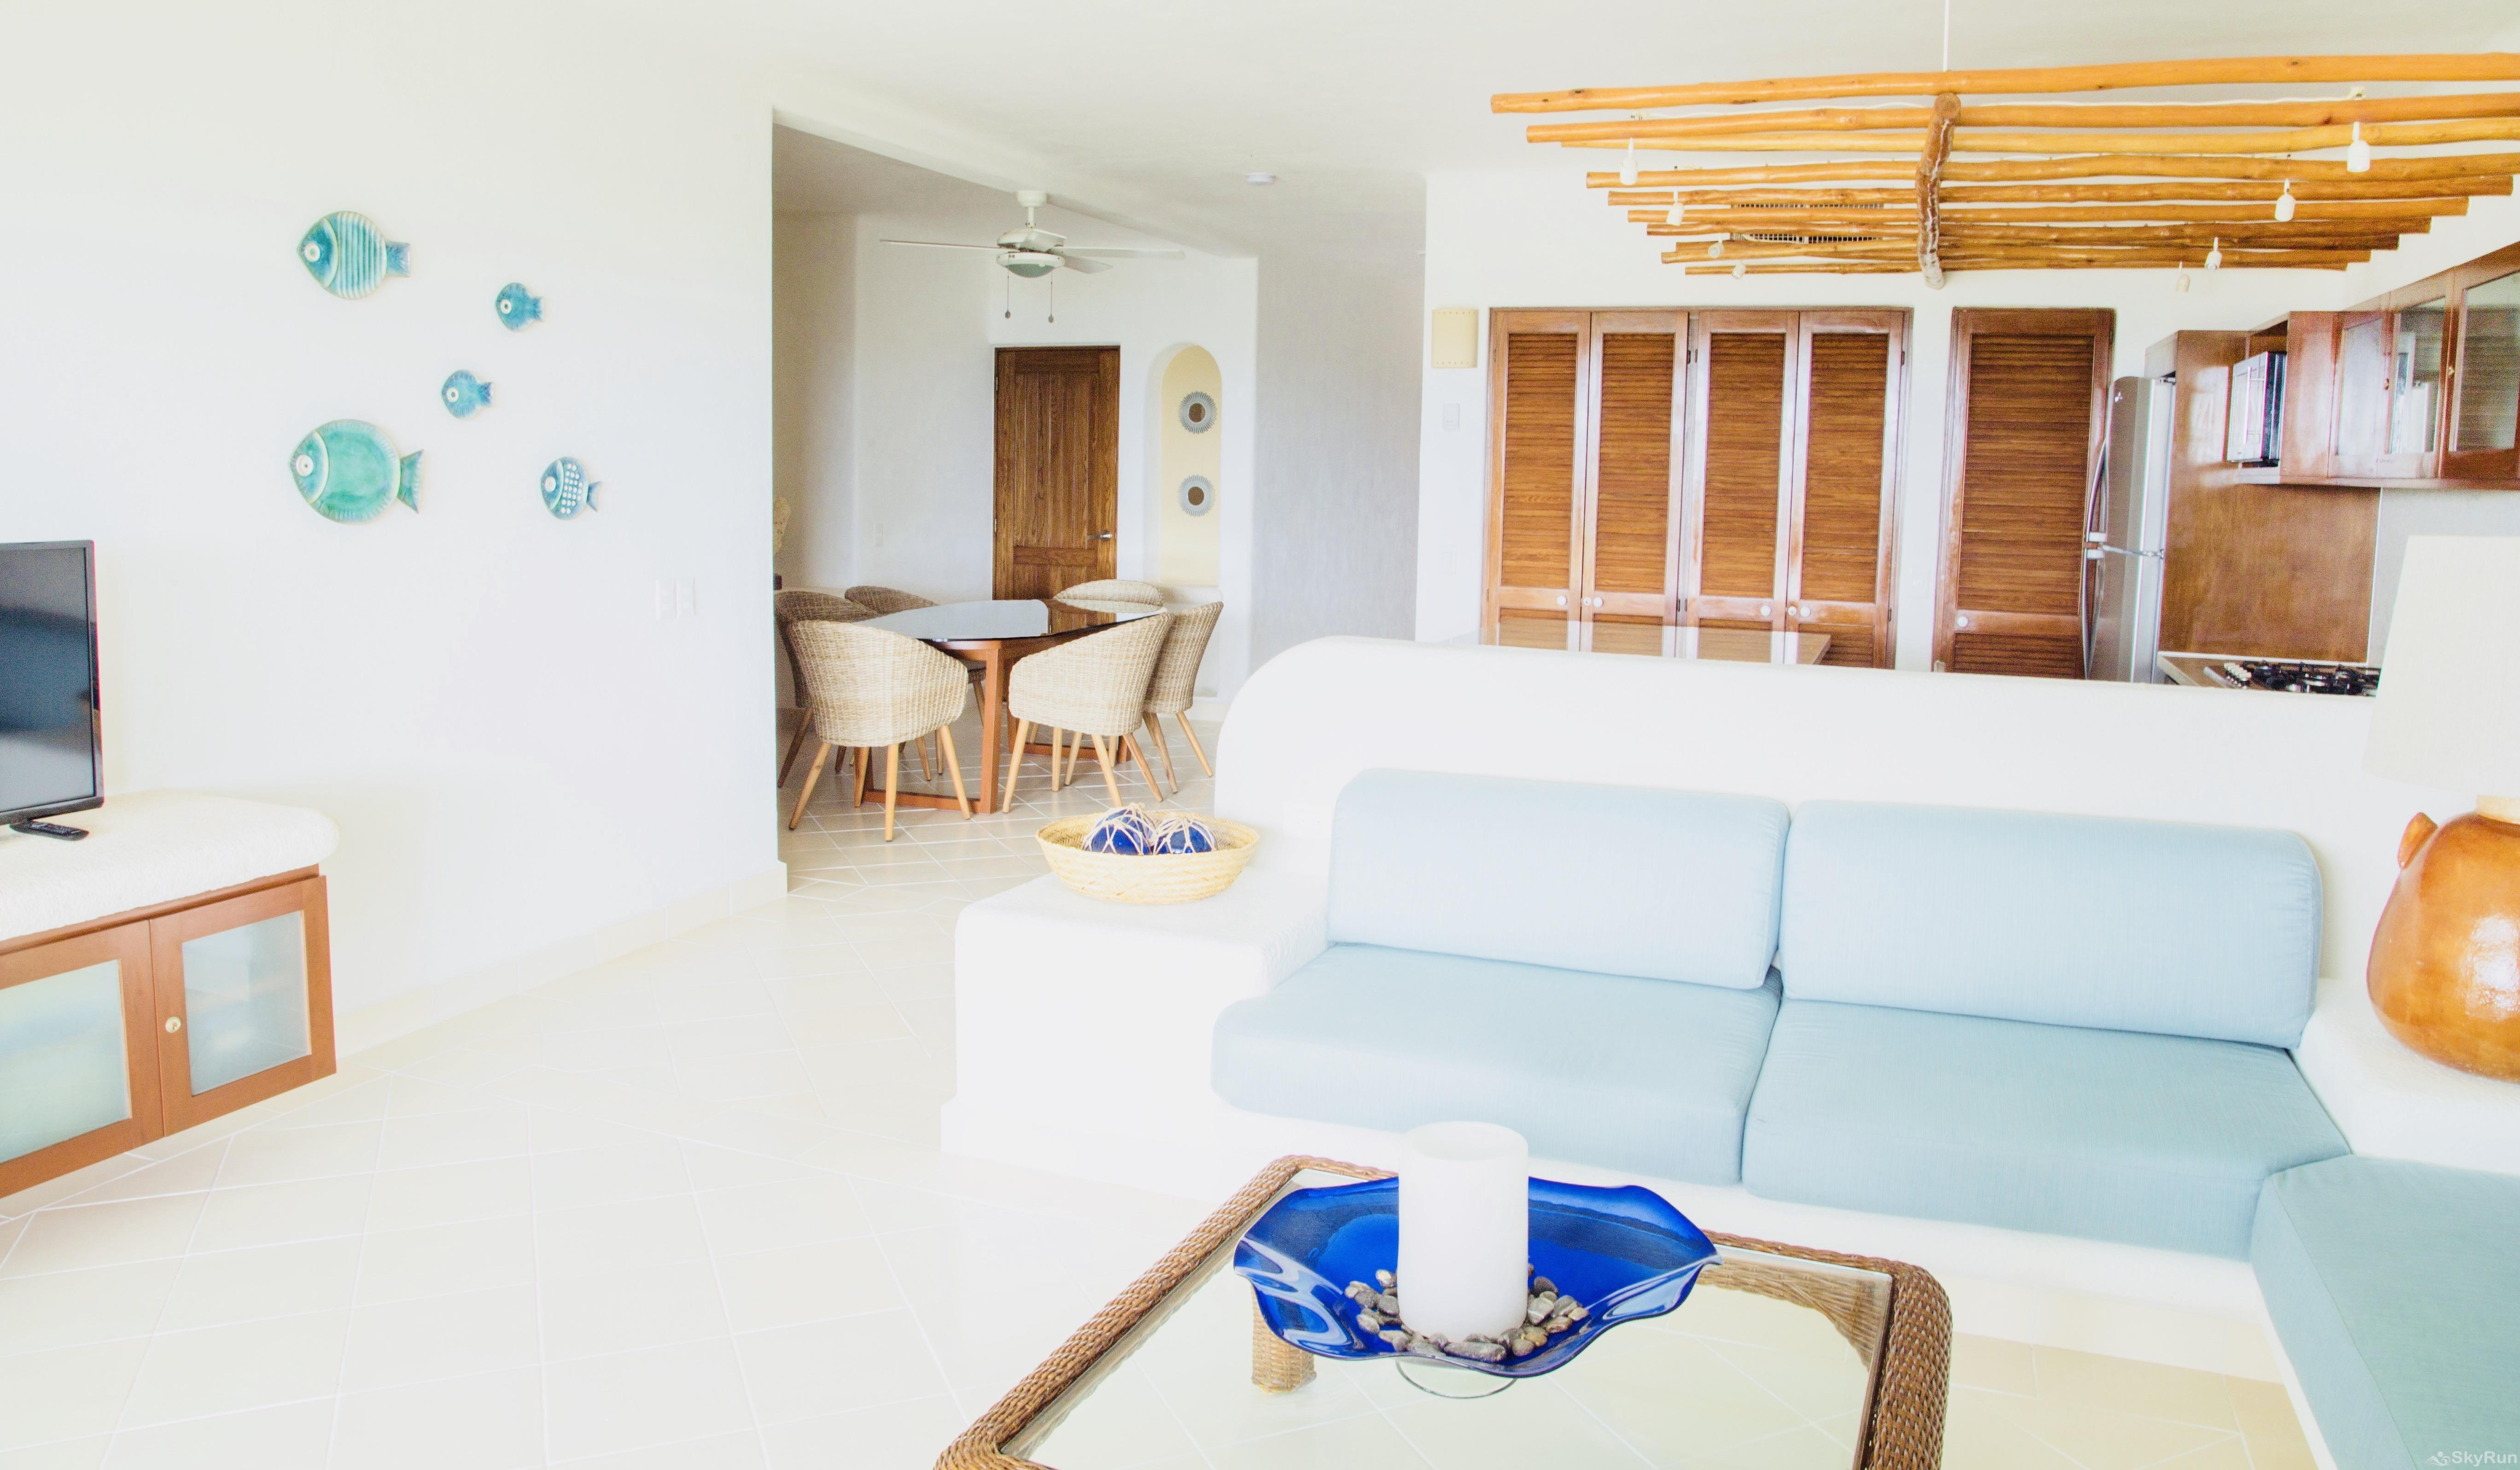 Beachfront Luxury Villa Outdoor Pool 206 3 Bedroom 2nd floor Spacious Cozy Living room